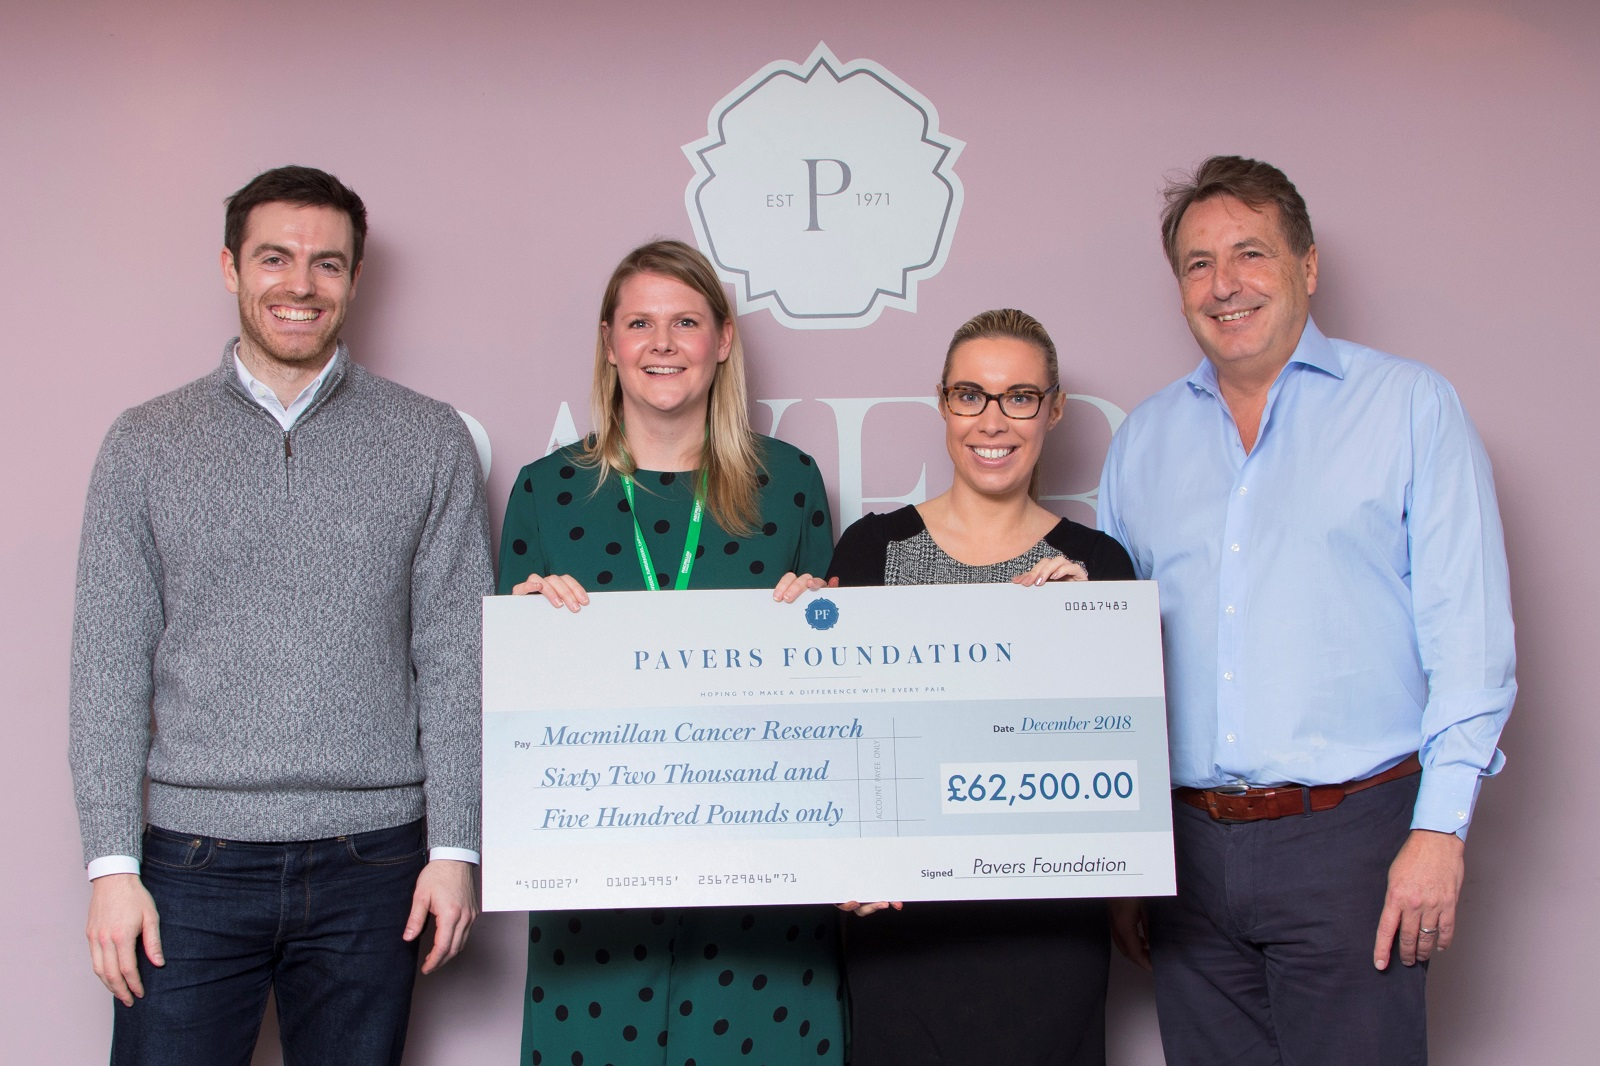 Macmillan Cancer Care and The Pavers Foundation